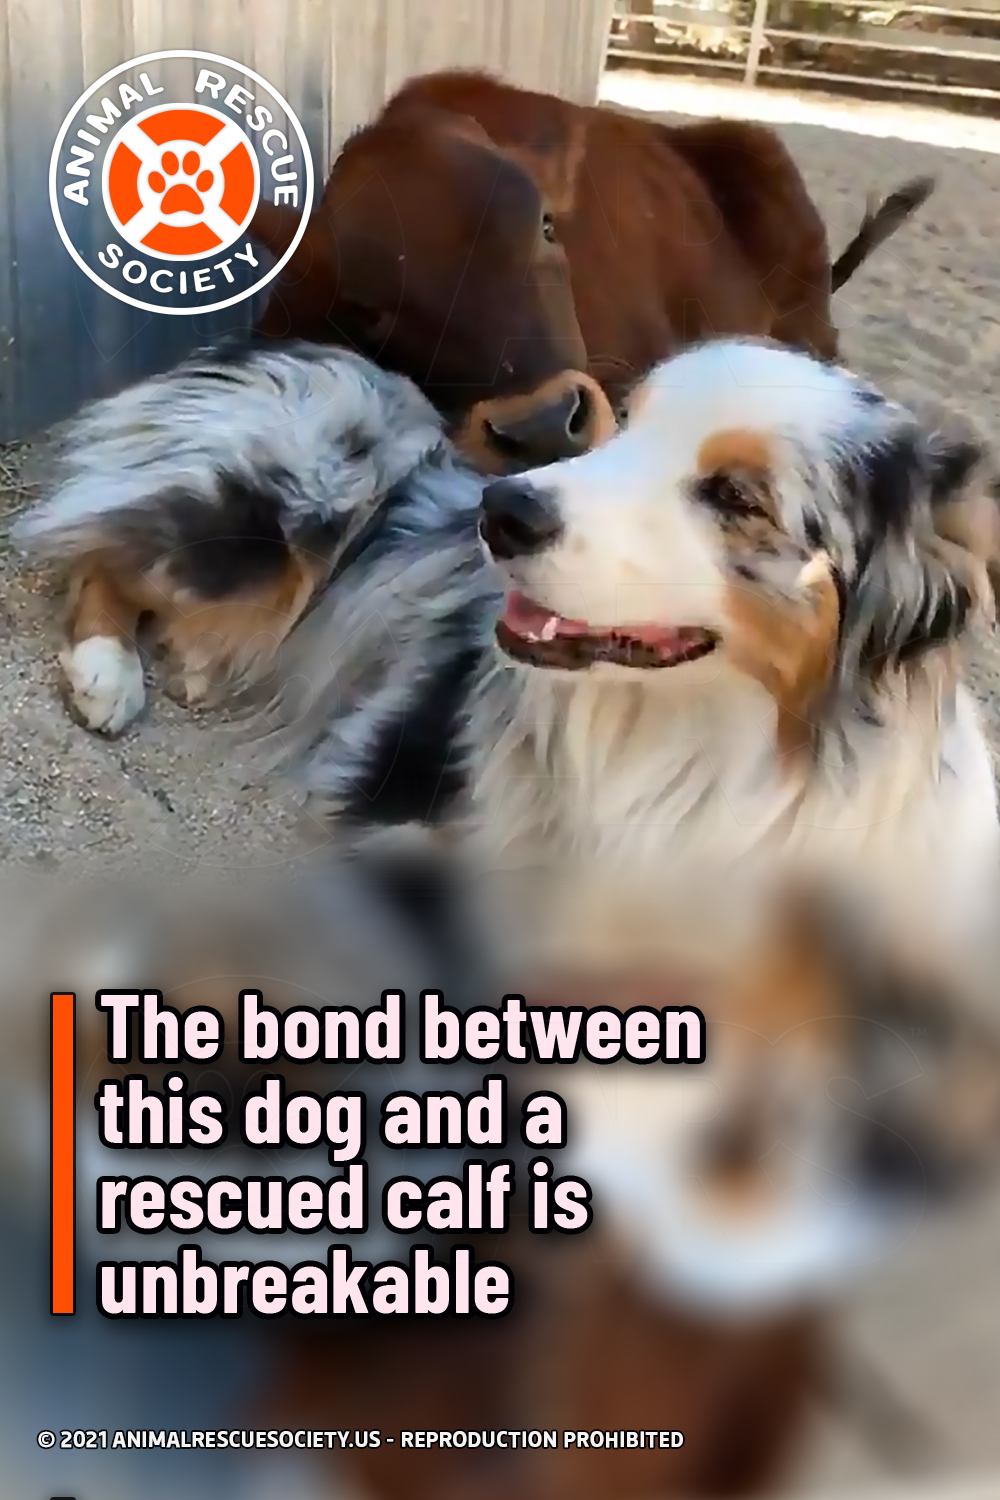 The bond between this dog and a rescued calf is unbreakable